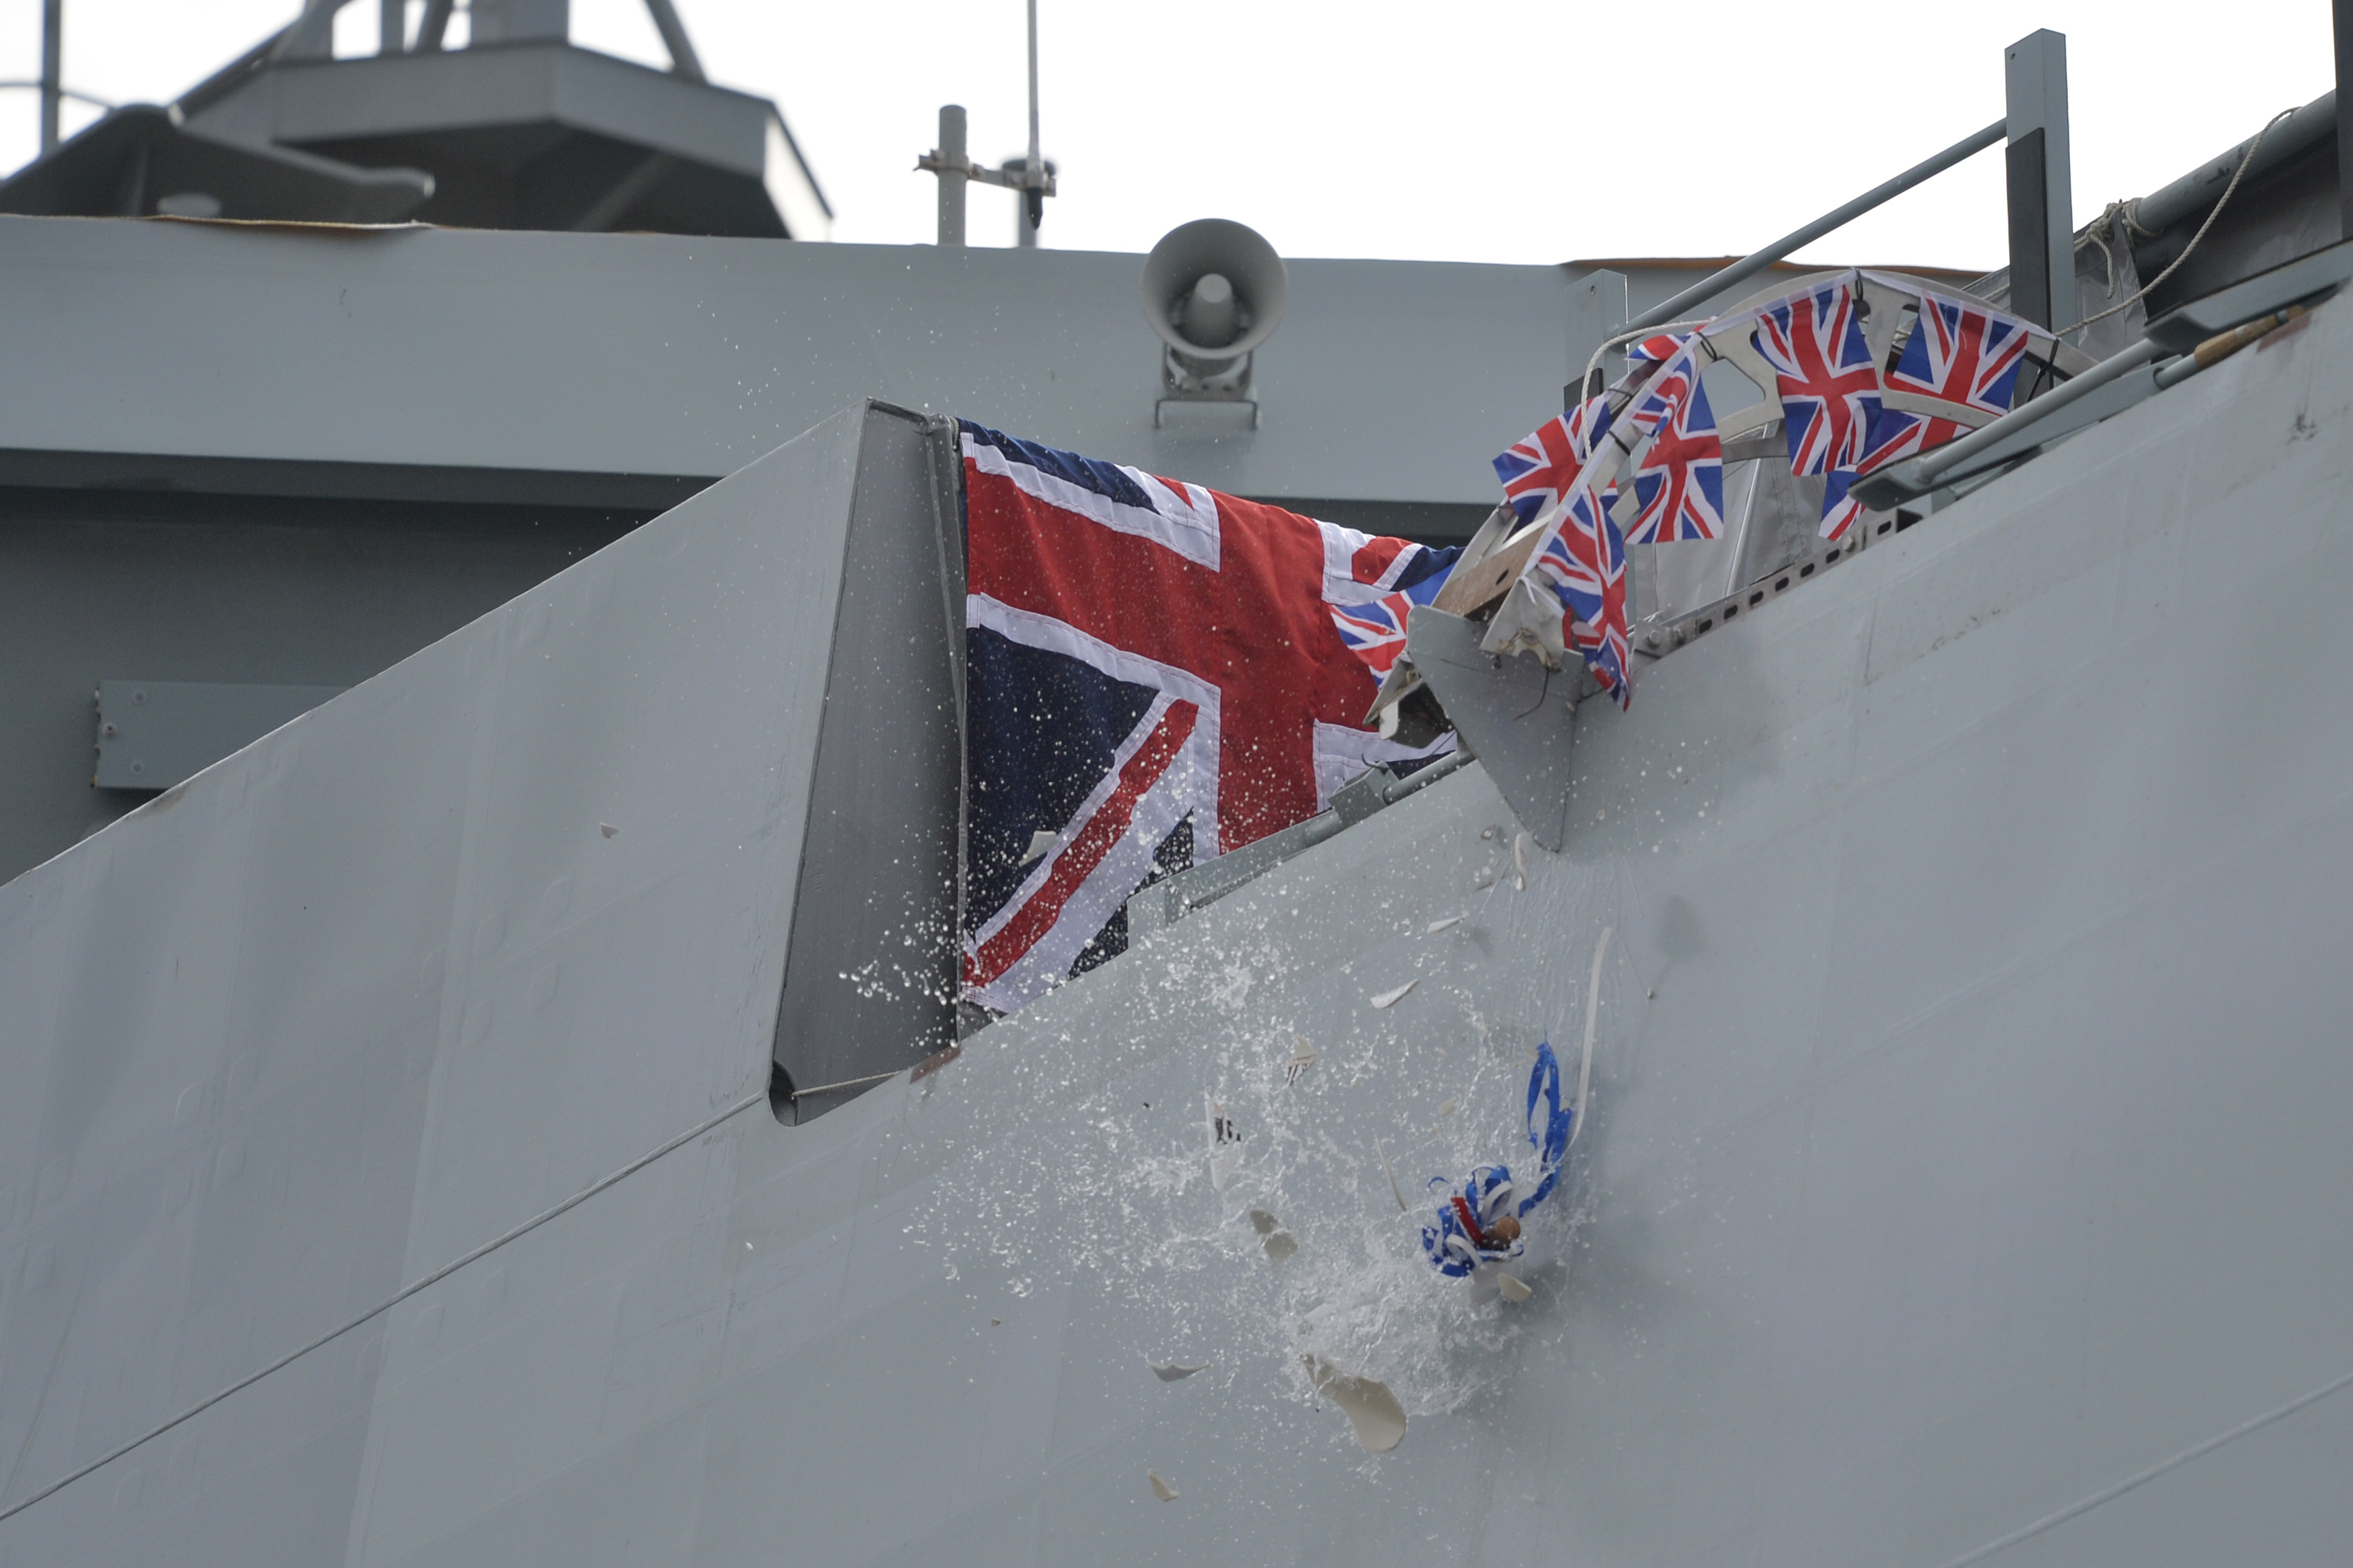 A bottle from Nelson's Gin Distillery & Gin School was smashed onto the ship during the ceremony (John Linton/PA)